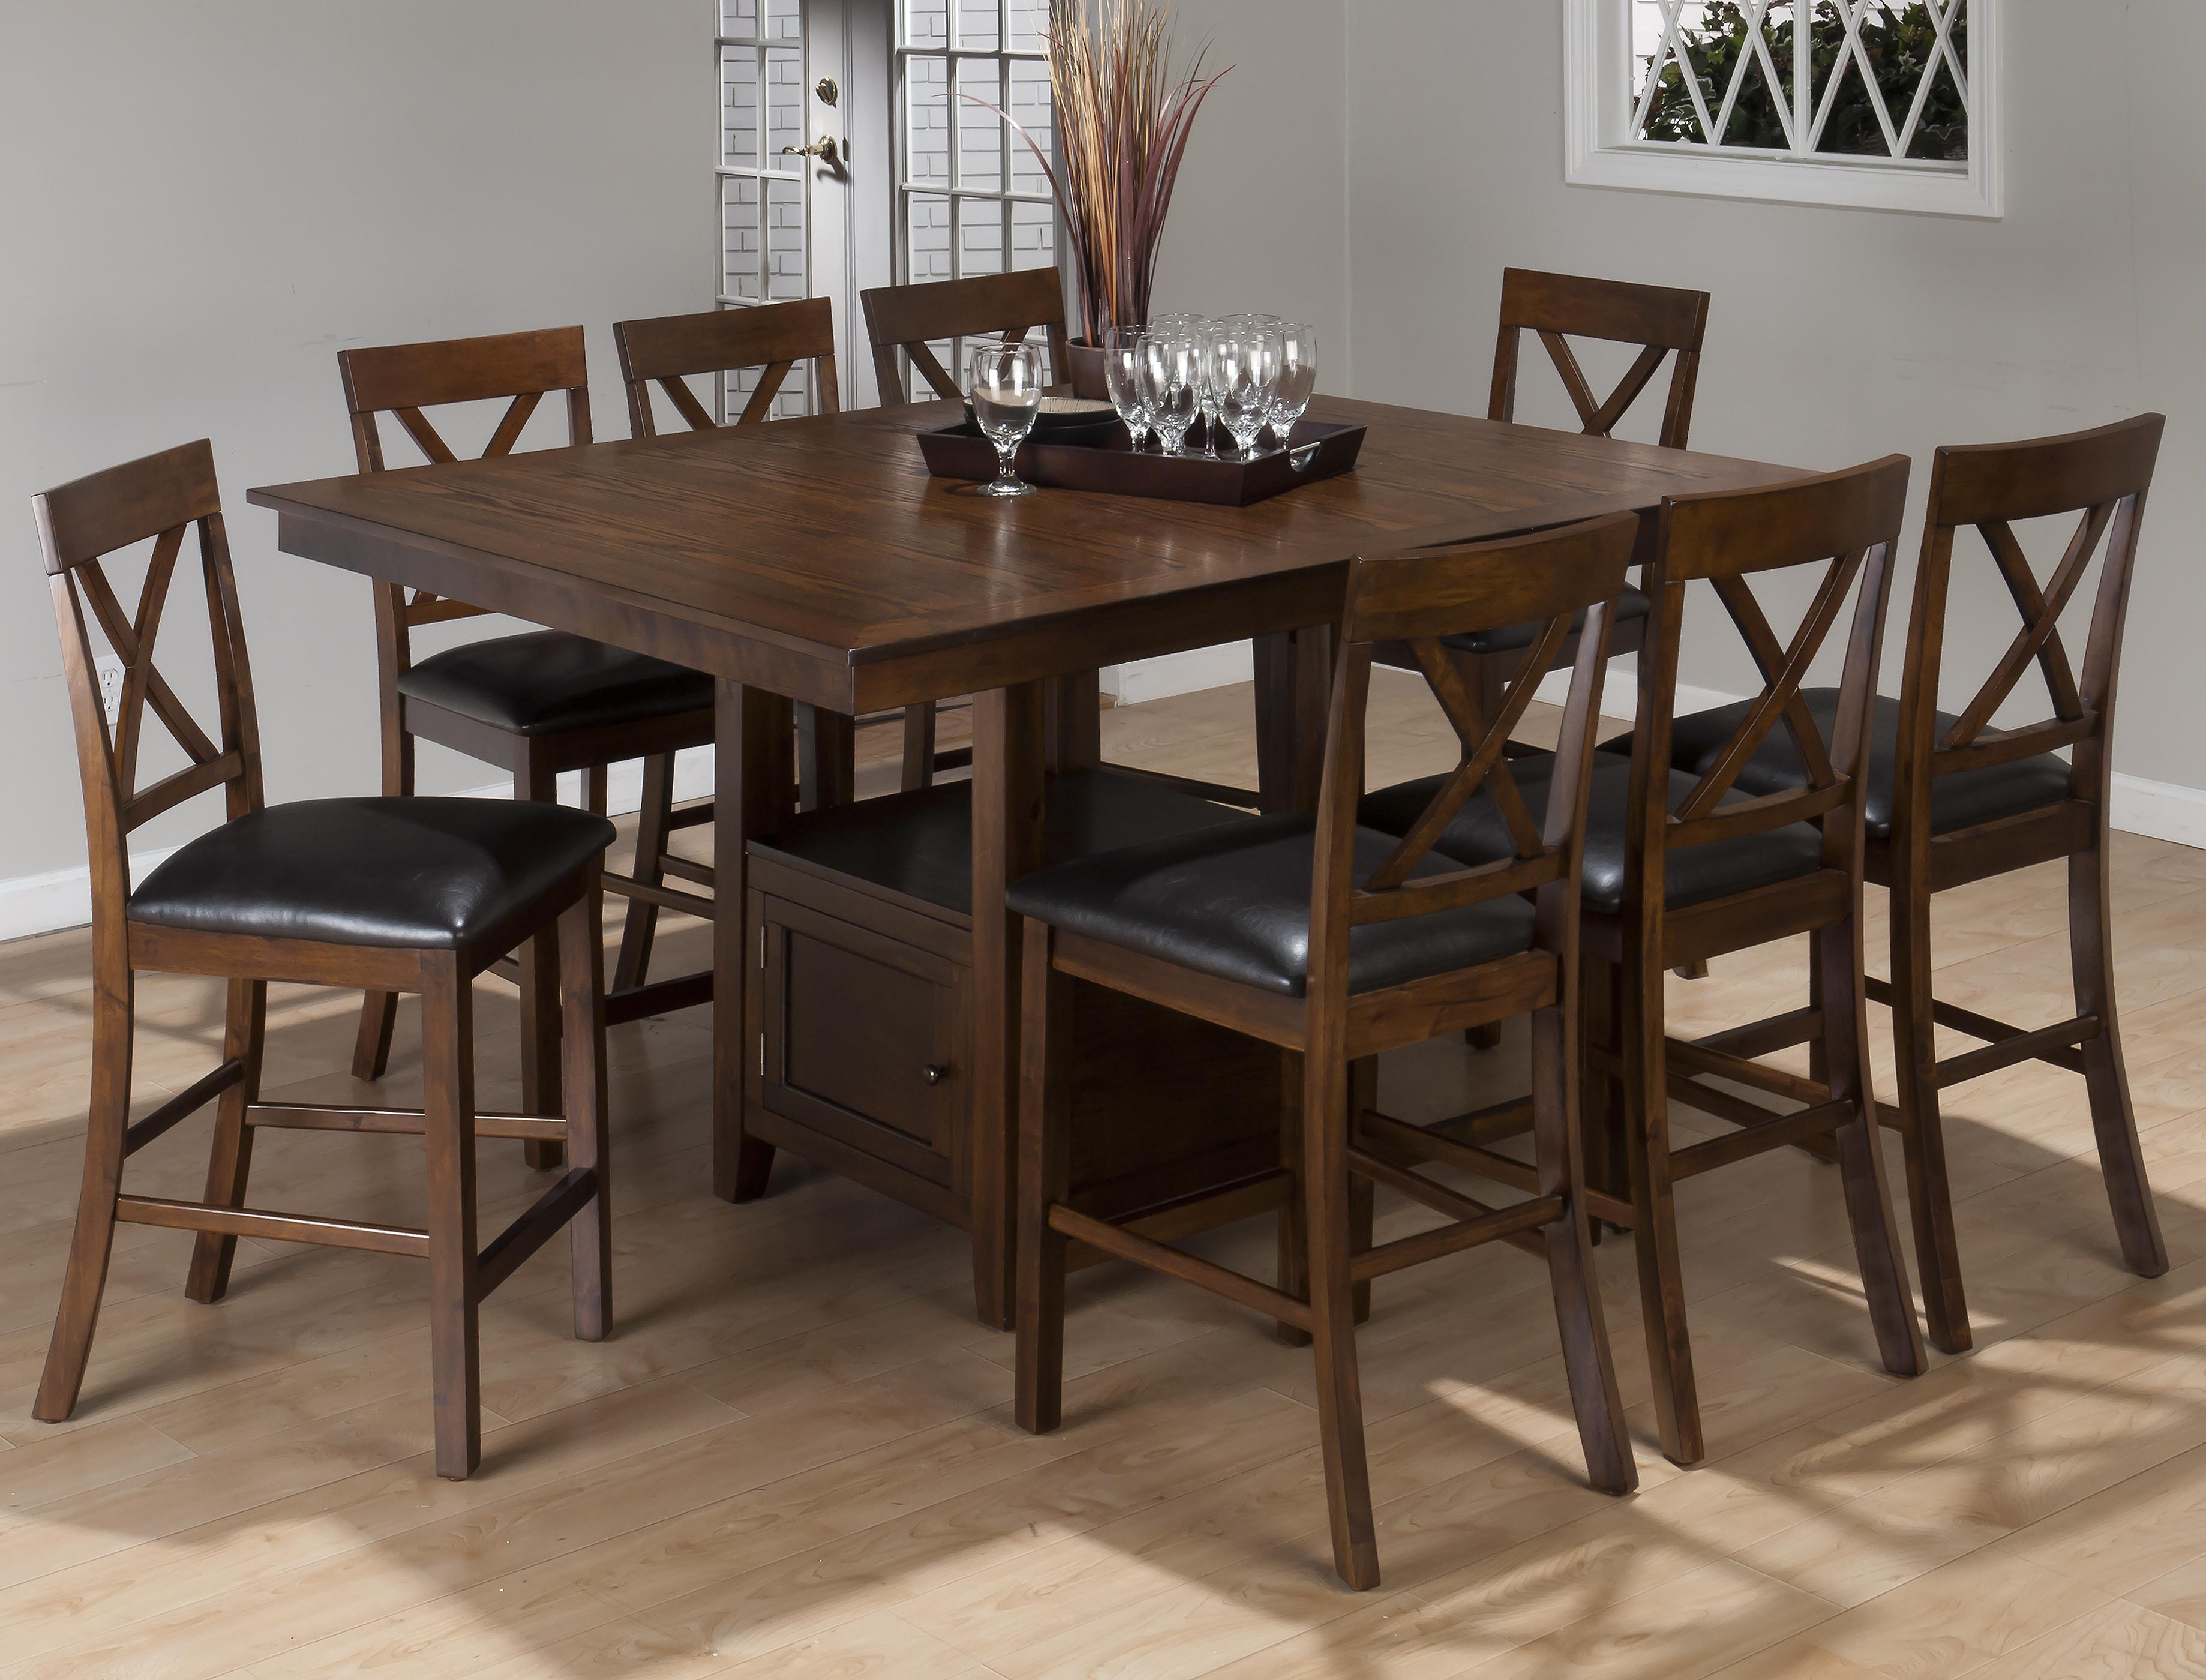 9 Piece Casual Counter Height Pedestal Table X Back Stool Set By